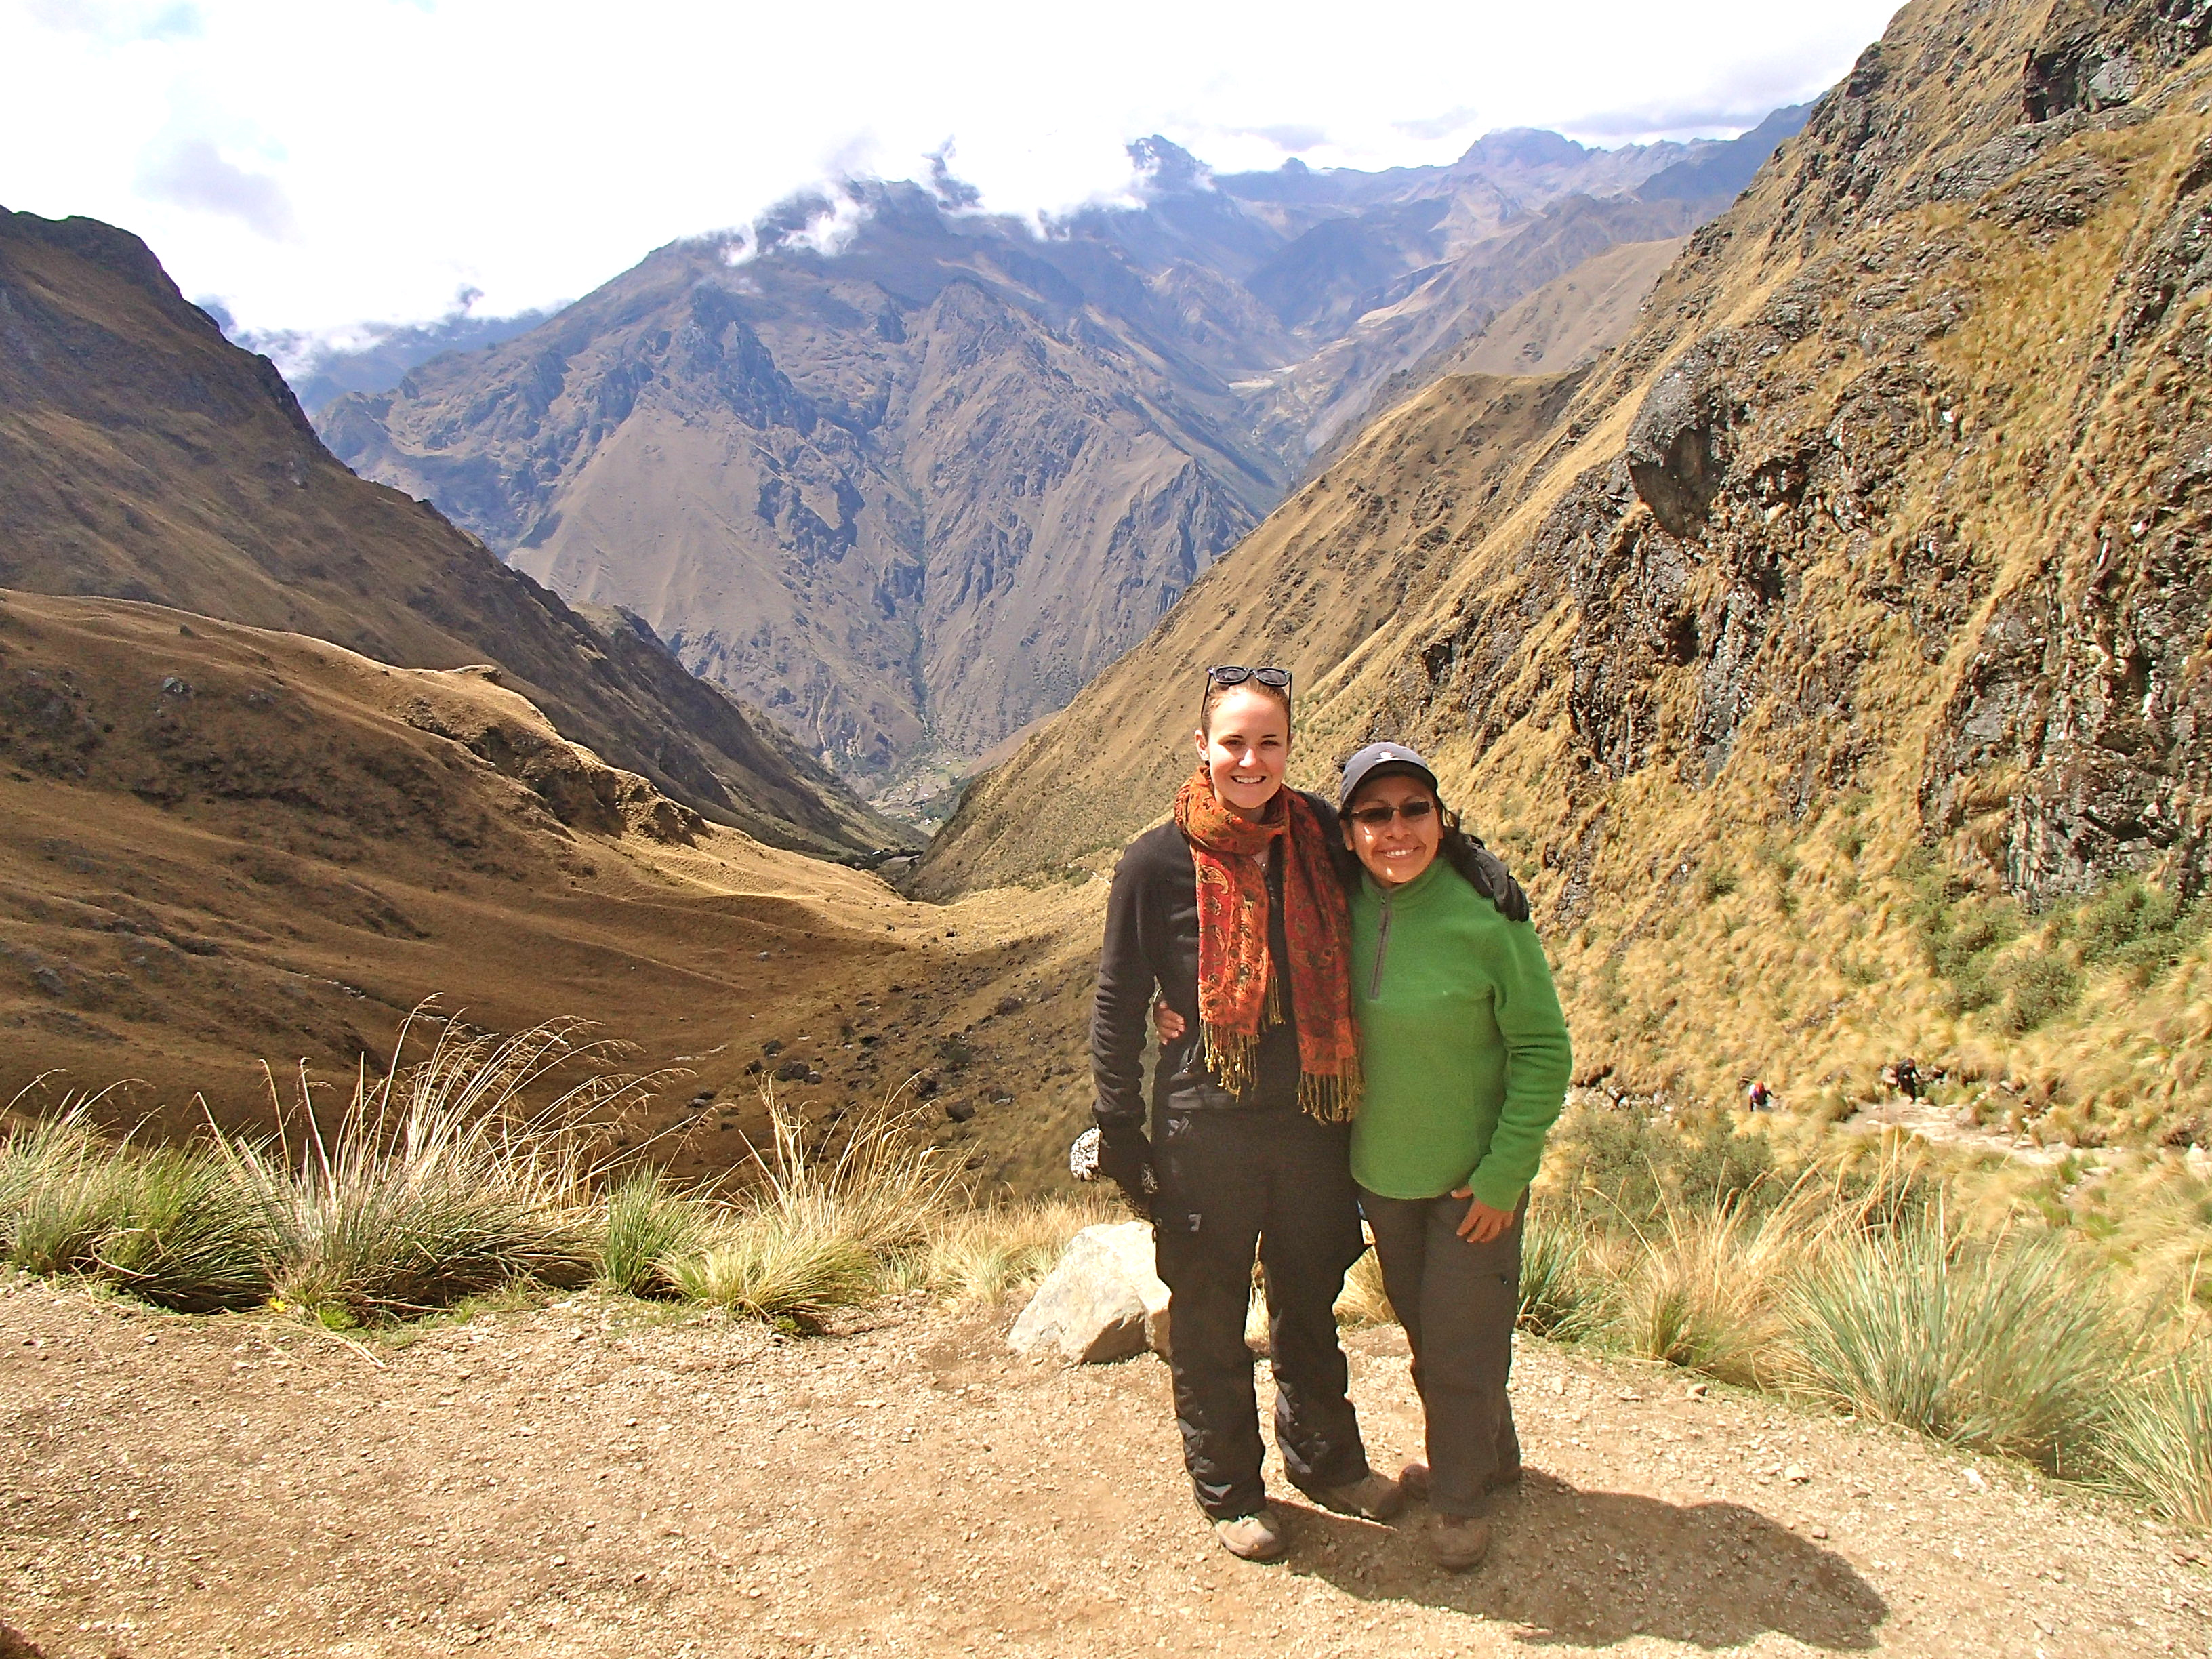 female guide on the inca trail hiking the inca trail for women Machu Picchu altitude